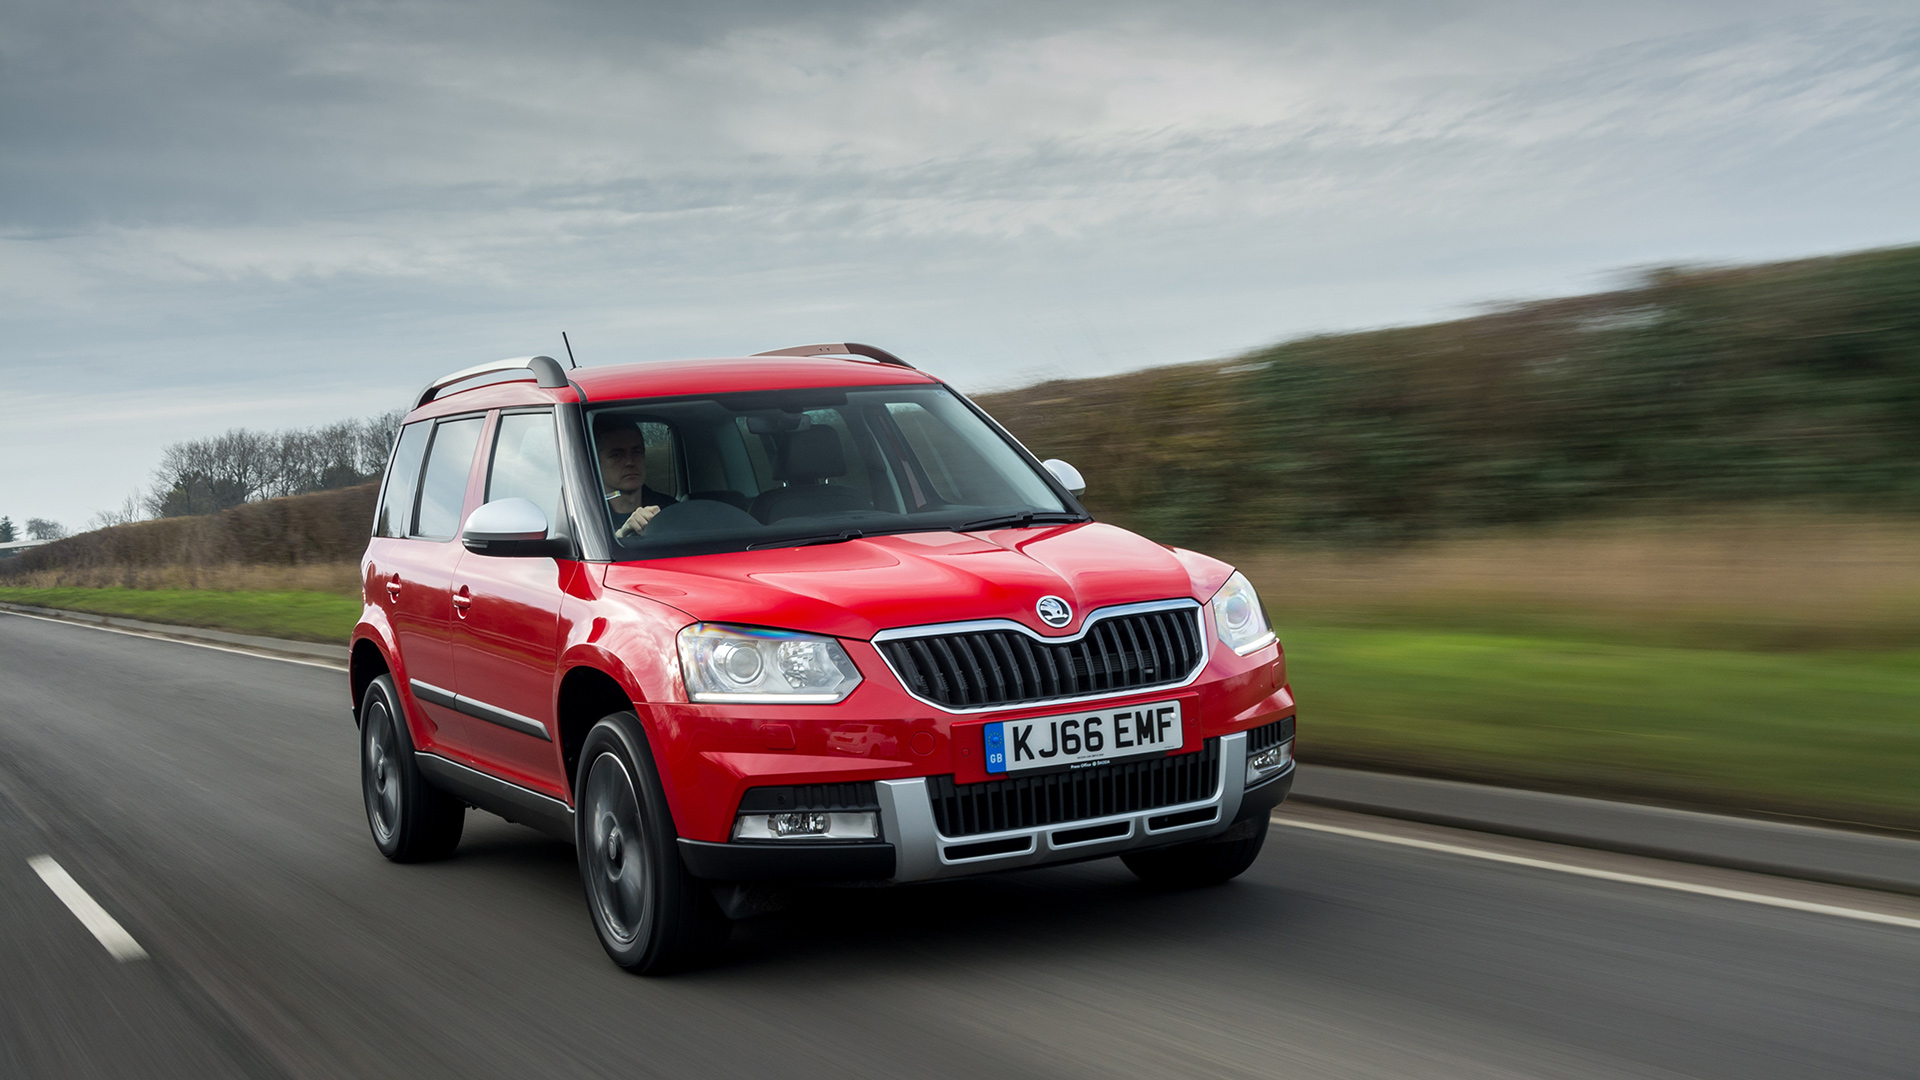 skoda yeti suv 2013 review auto trader uk. Black Bedroom Furniture Sets. Home Design Ideas